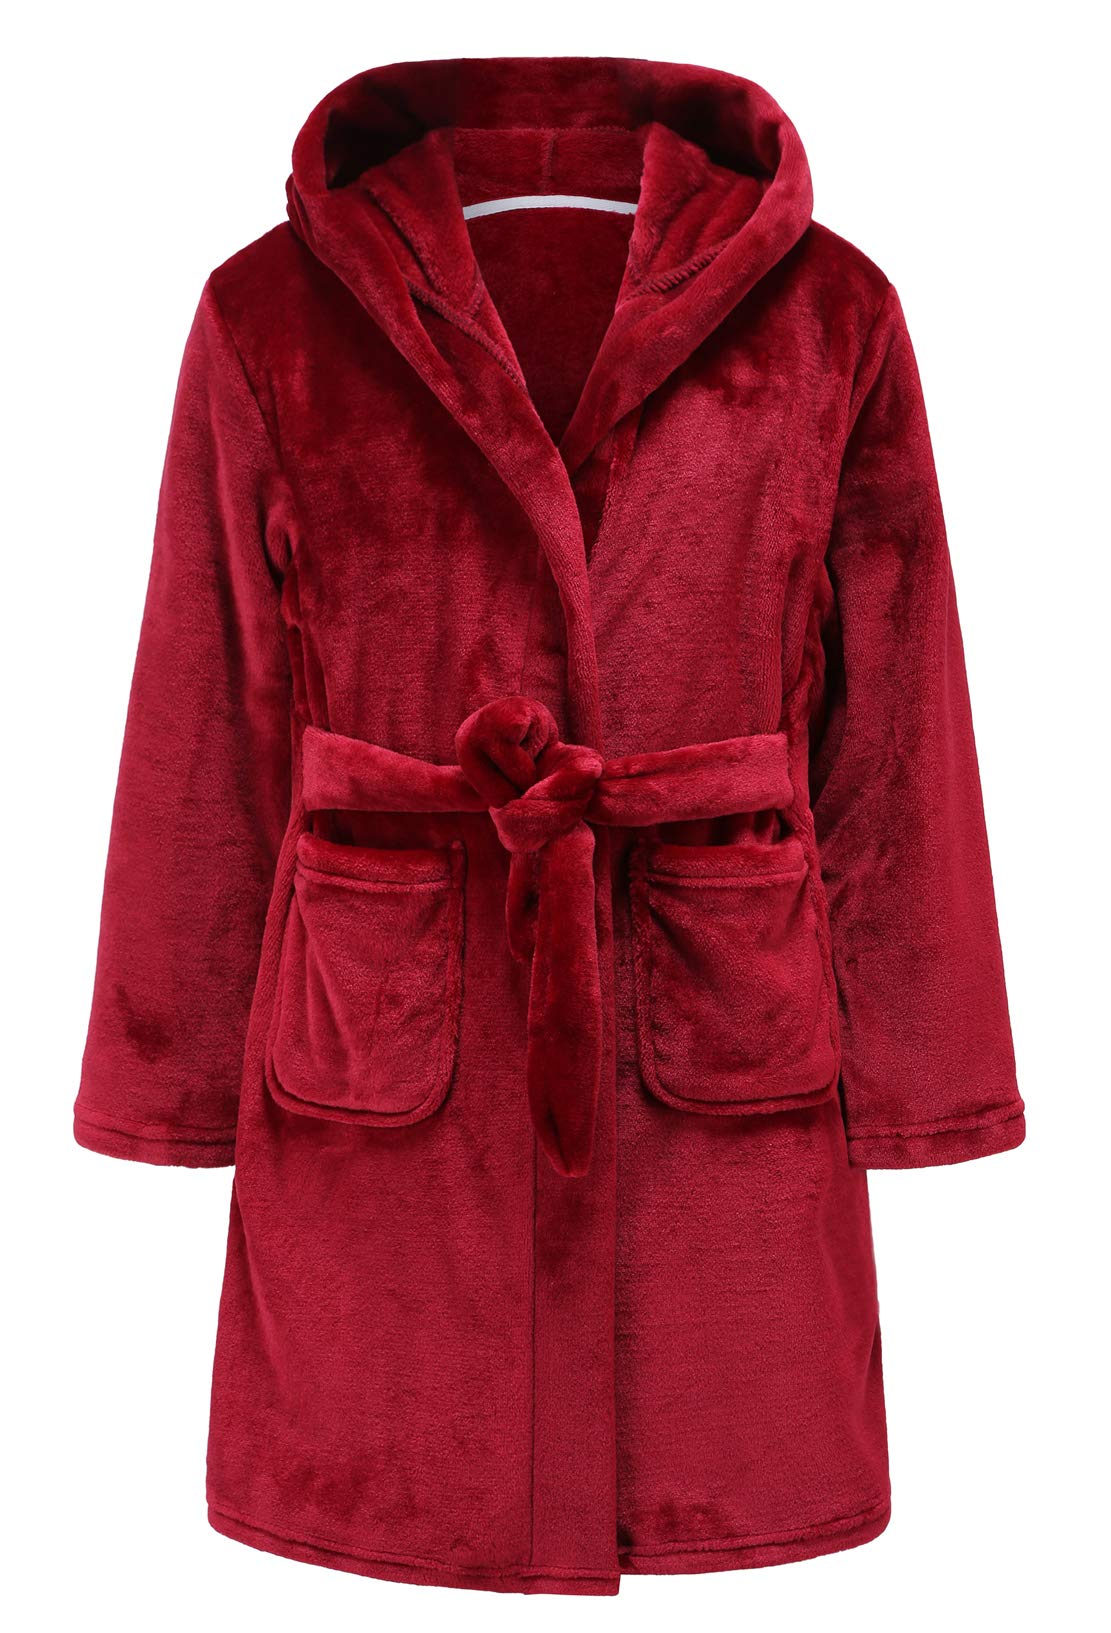 Image of Burgundy Flannel Robe for Boys and Toddlers - See More Colors